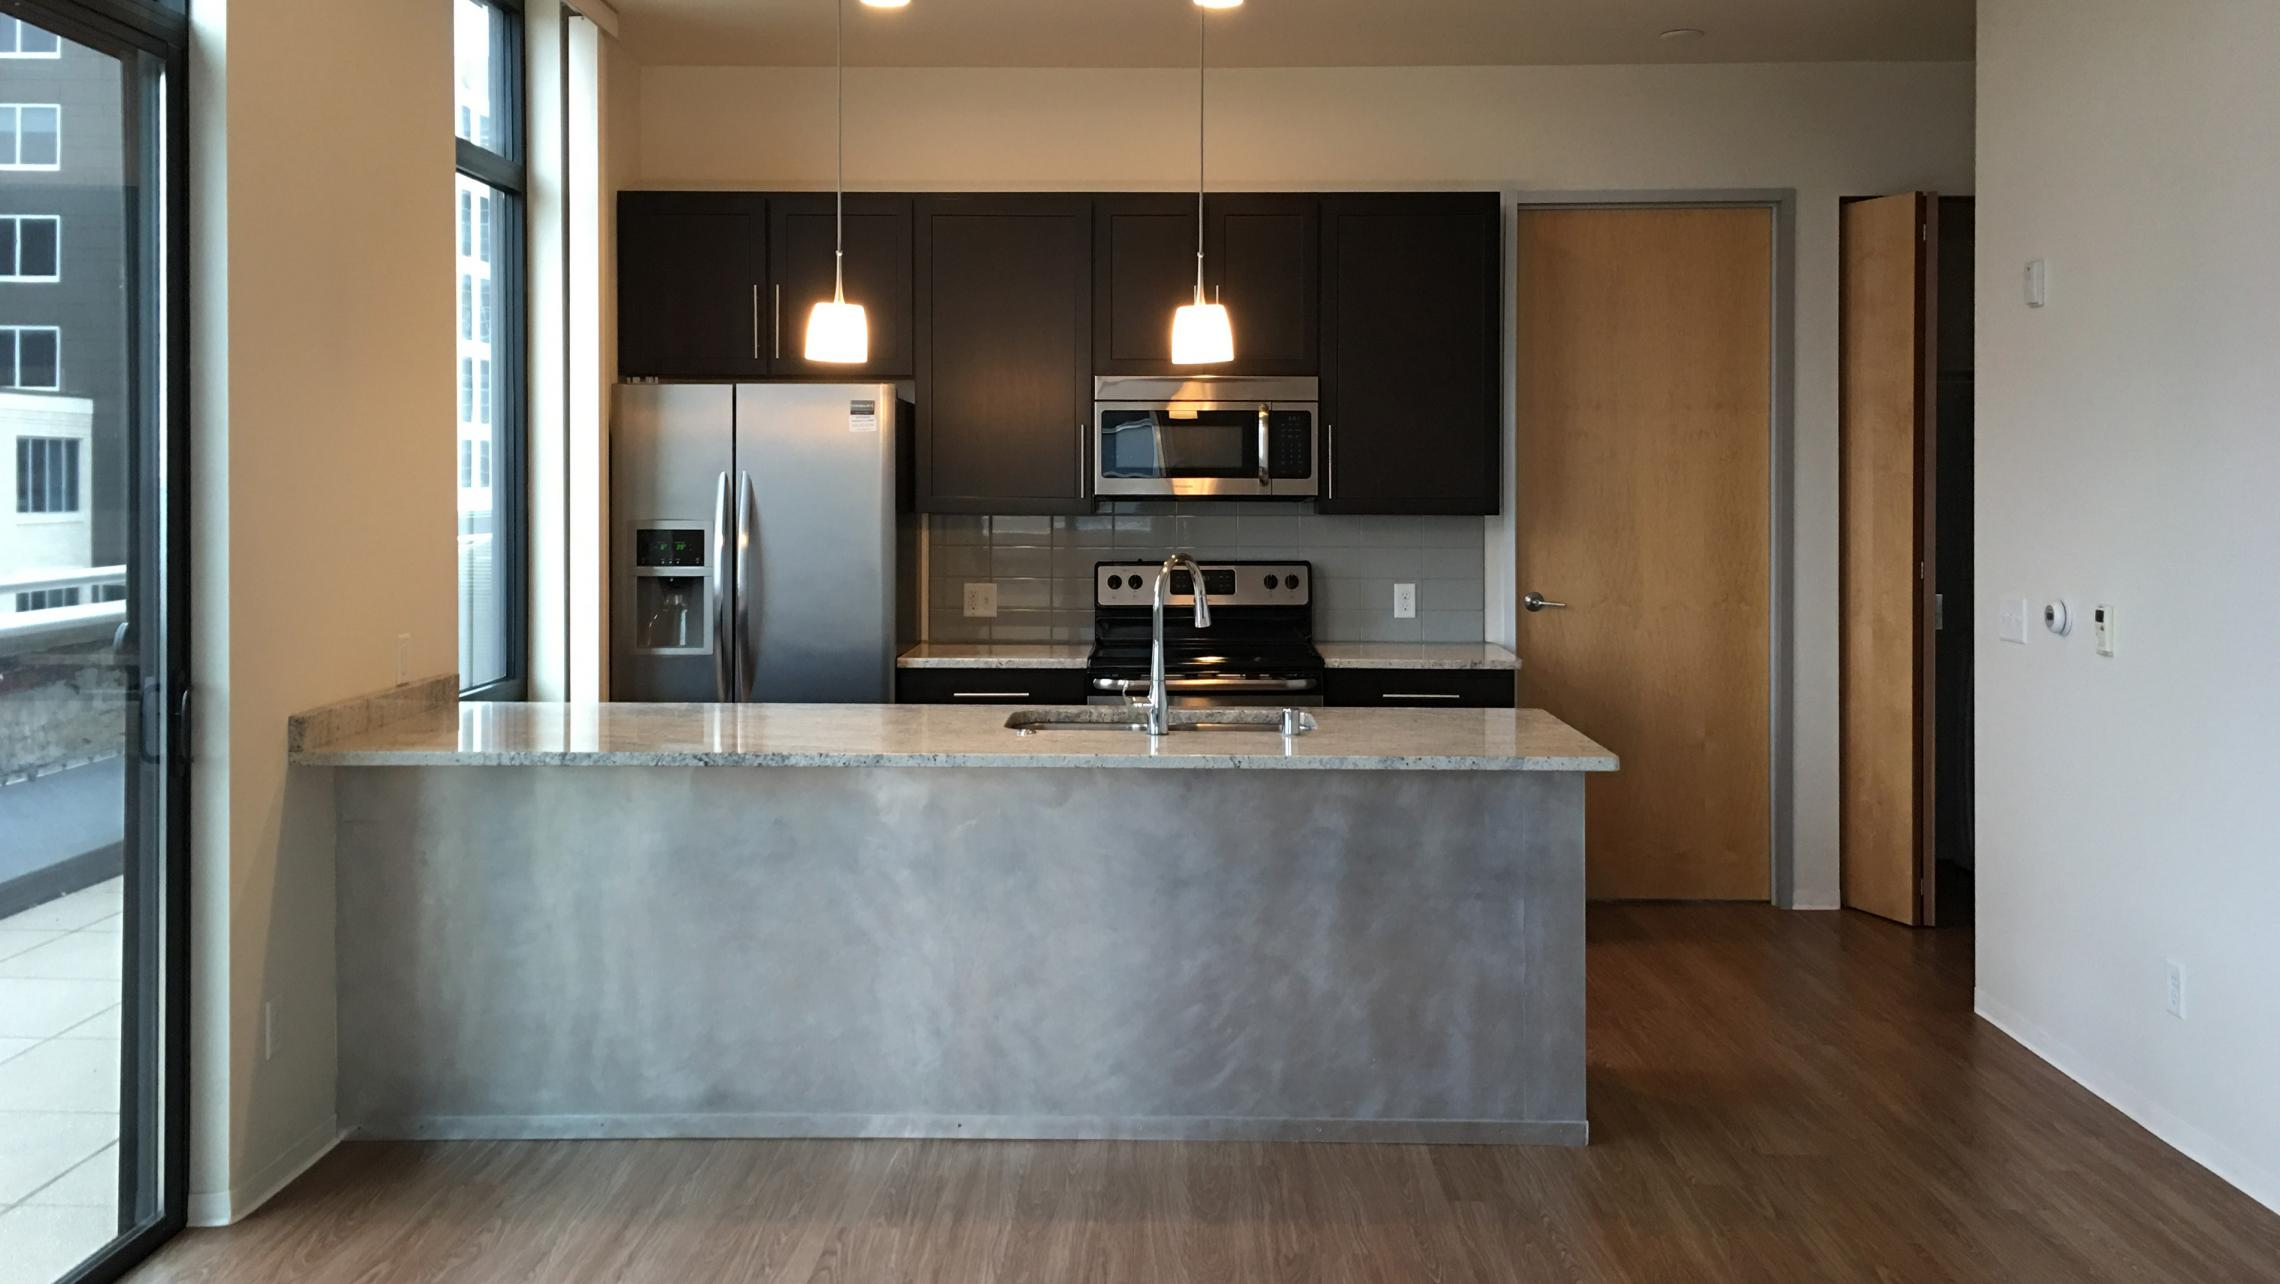 ULI Capitol Hill - Kitchen with High End Finishes